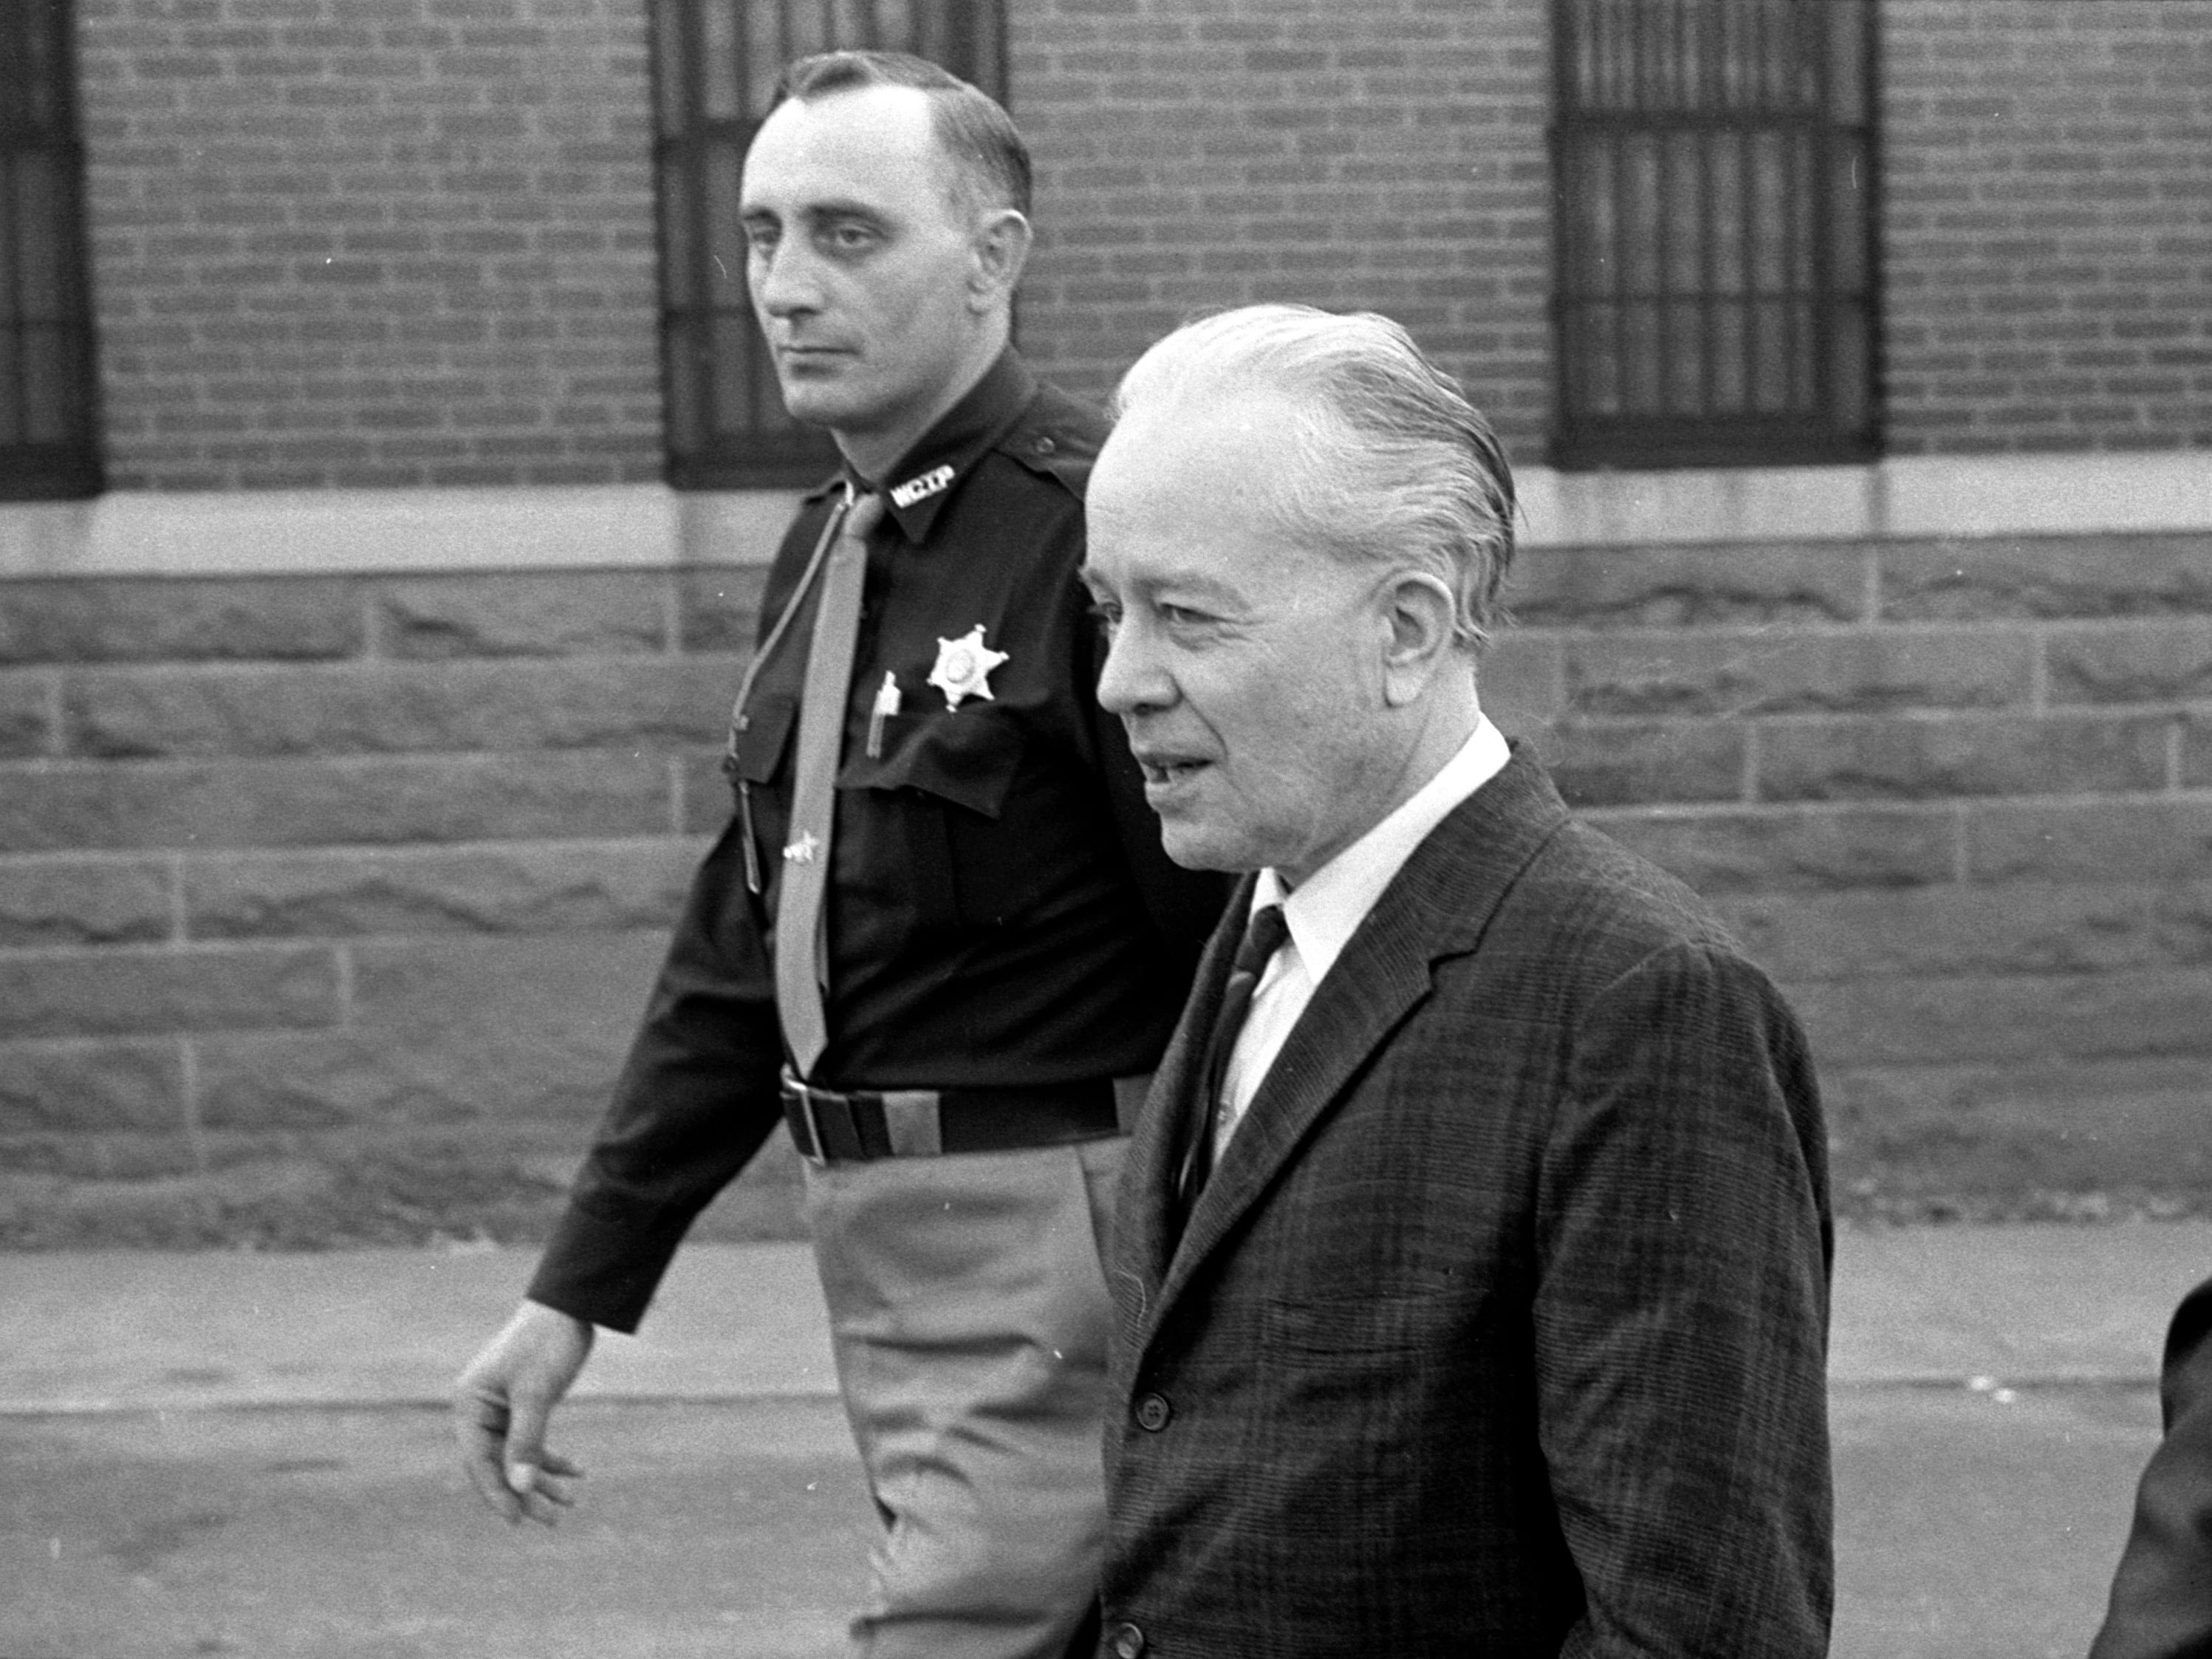 A Waushara county sheriff's deputy led Ed Gein from the courthouse in Wautoma after he was found not guilty by reason of insanity in the 1957 slaying of a Plainfield widow and recommitted to the central state hospital.